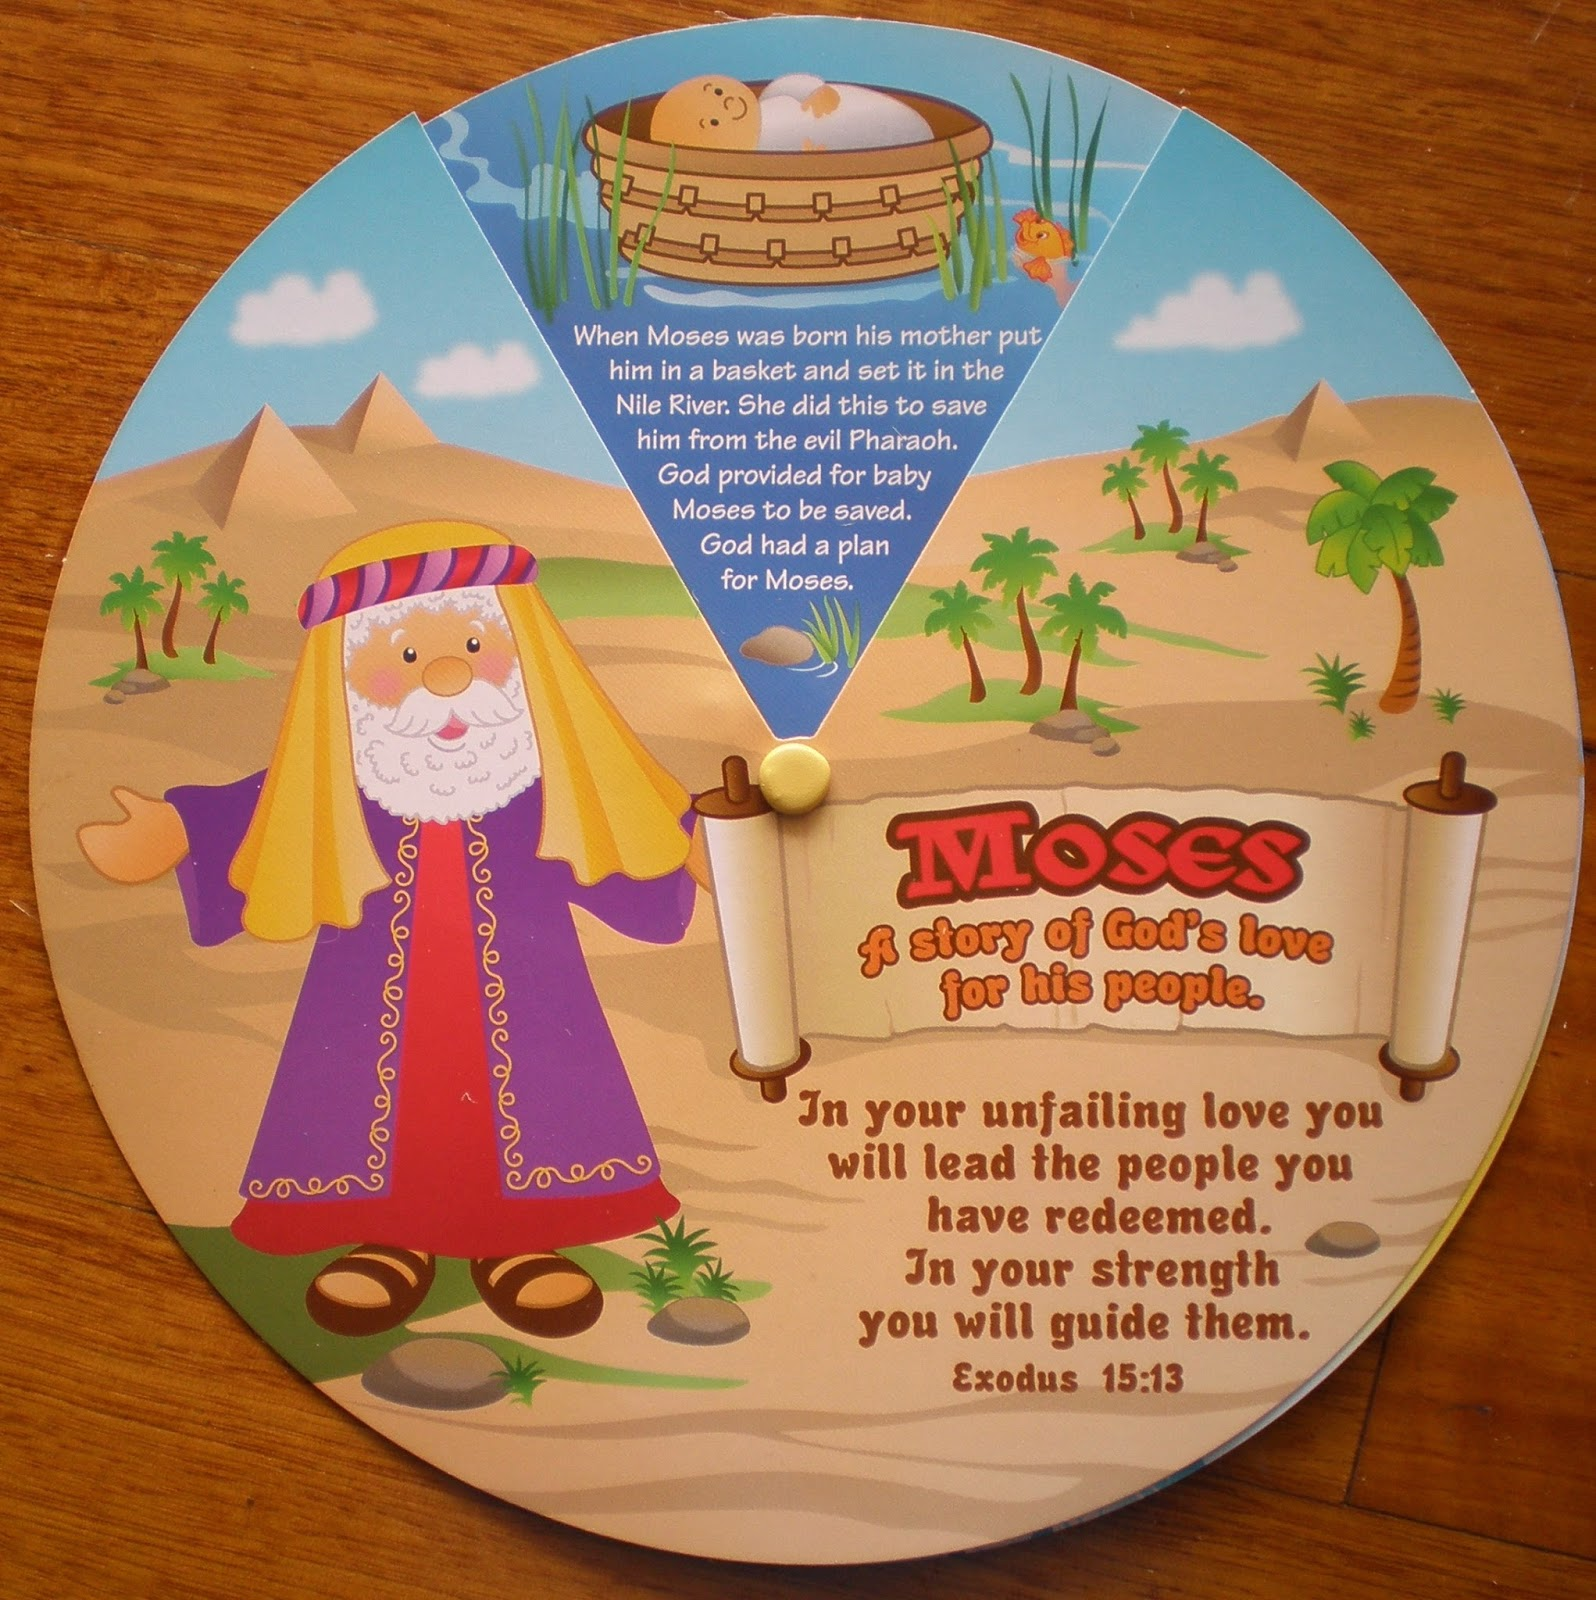 Petersham Bible Book Amp Tract Depot Moses Learning Wheel